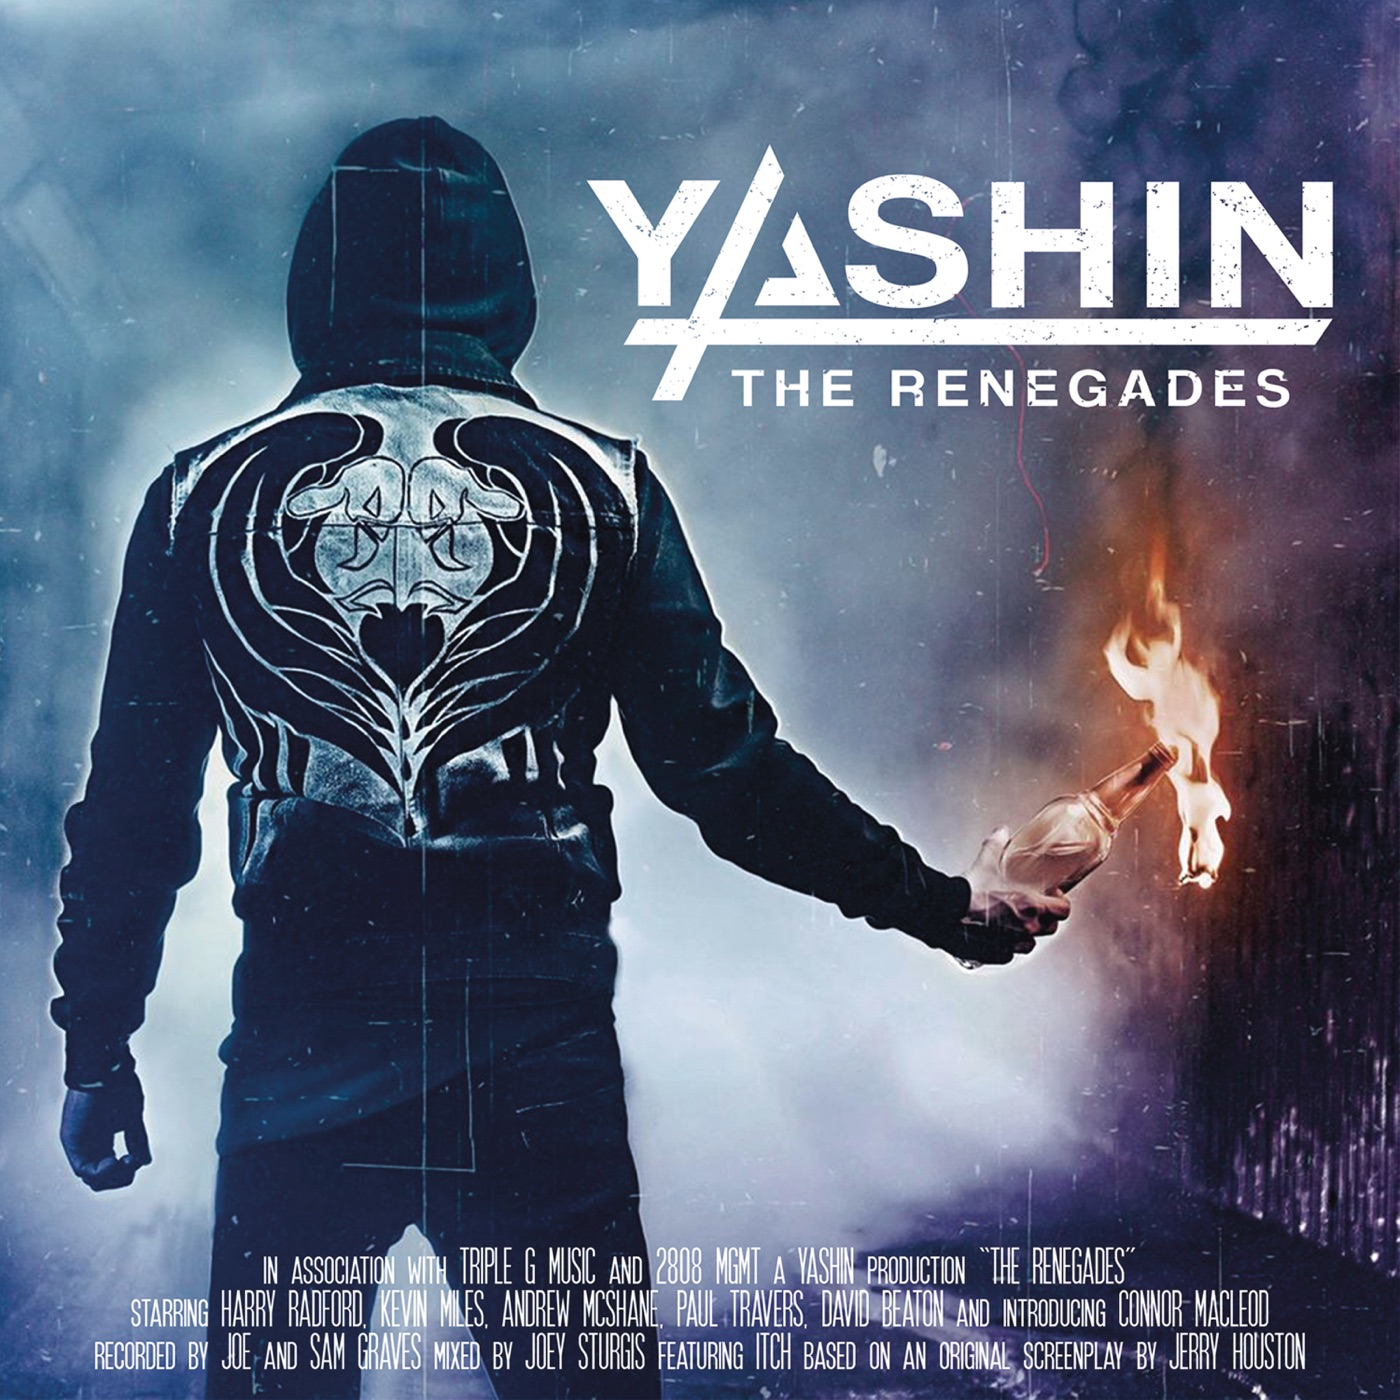 Yashin - The Renegades [Deluxe Edition] (2016)